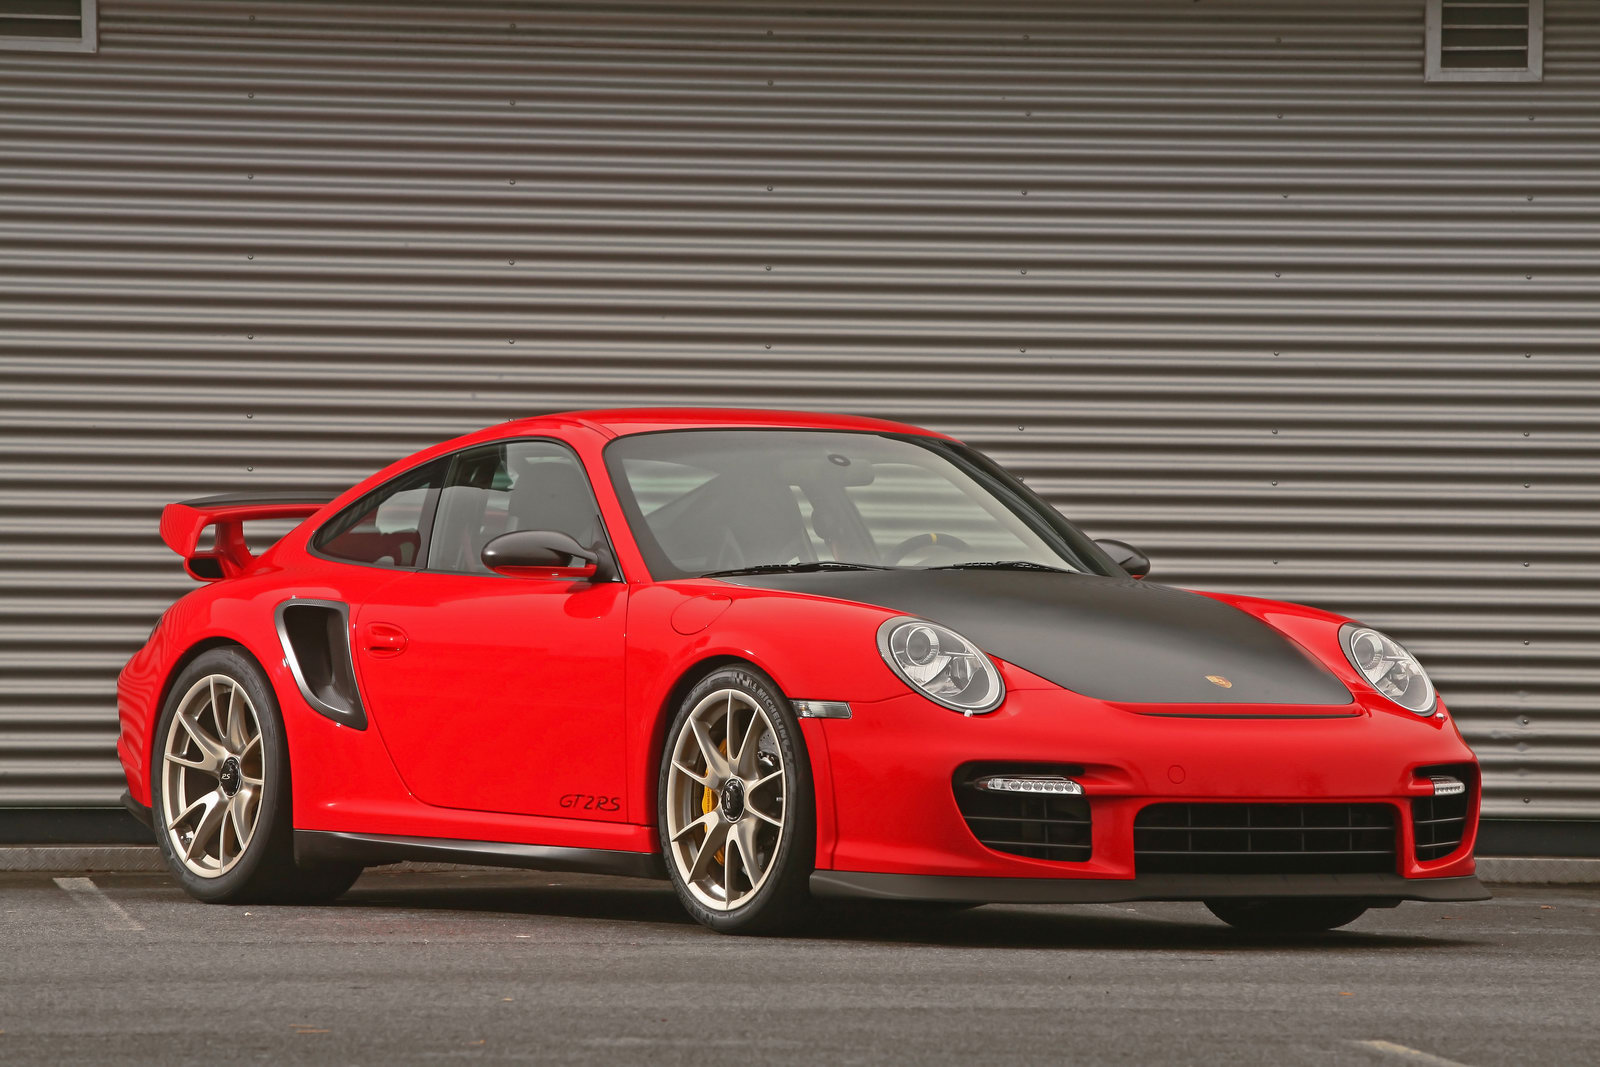 2011 porsche gt2 rs by wimmer rs review gallery top speed. Black Bedroom Furniture Sets. Home Design Ideas